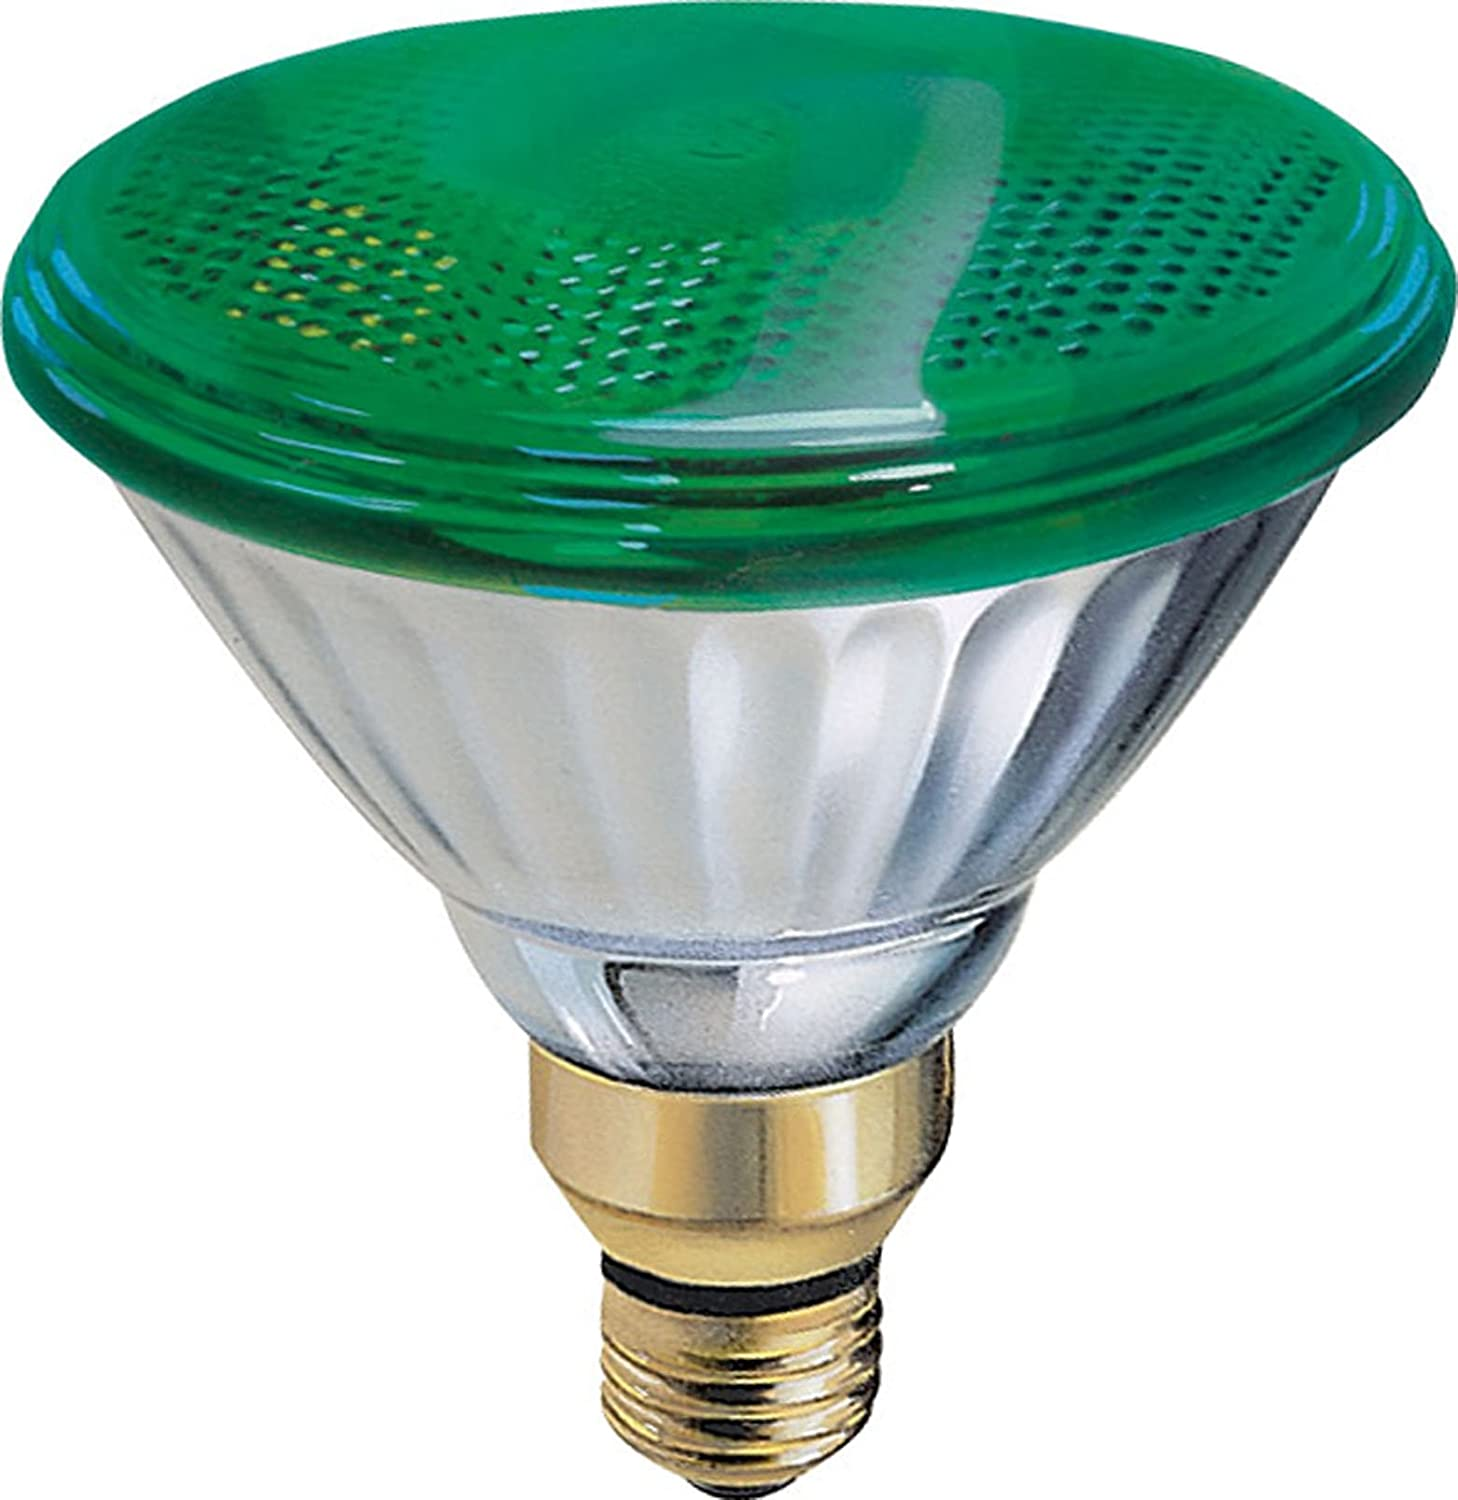 Ge lighting 13474 85 watt outdoor par38 incandescent light bulb ge lighting 13474 85 watt outdoor par38 incandescent light bulb green colored flood lights outdoor amazon workwithnaturefo